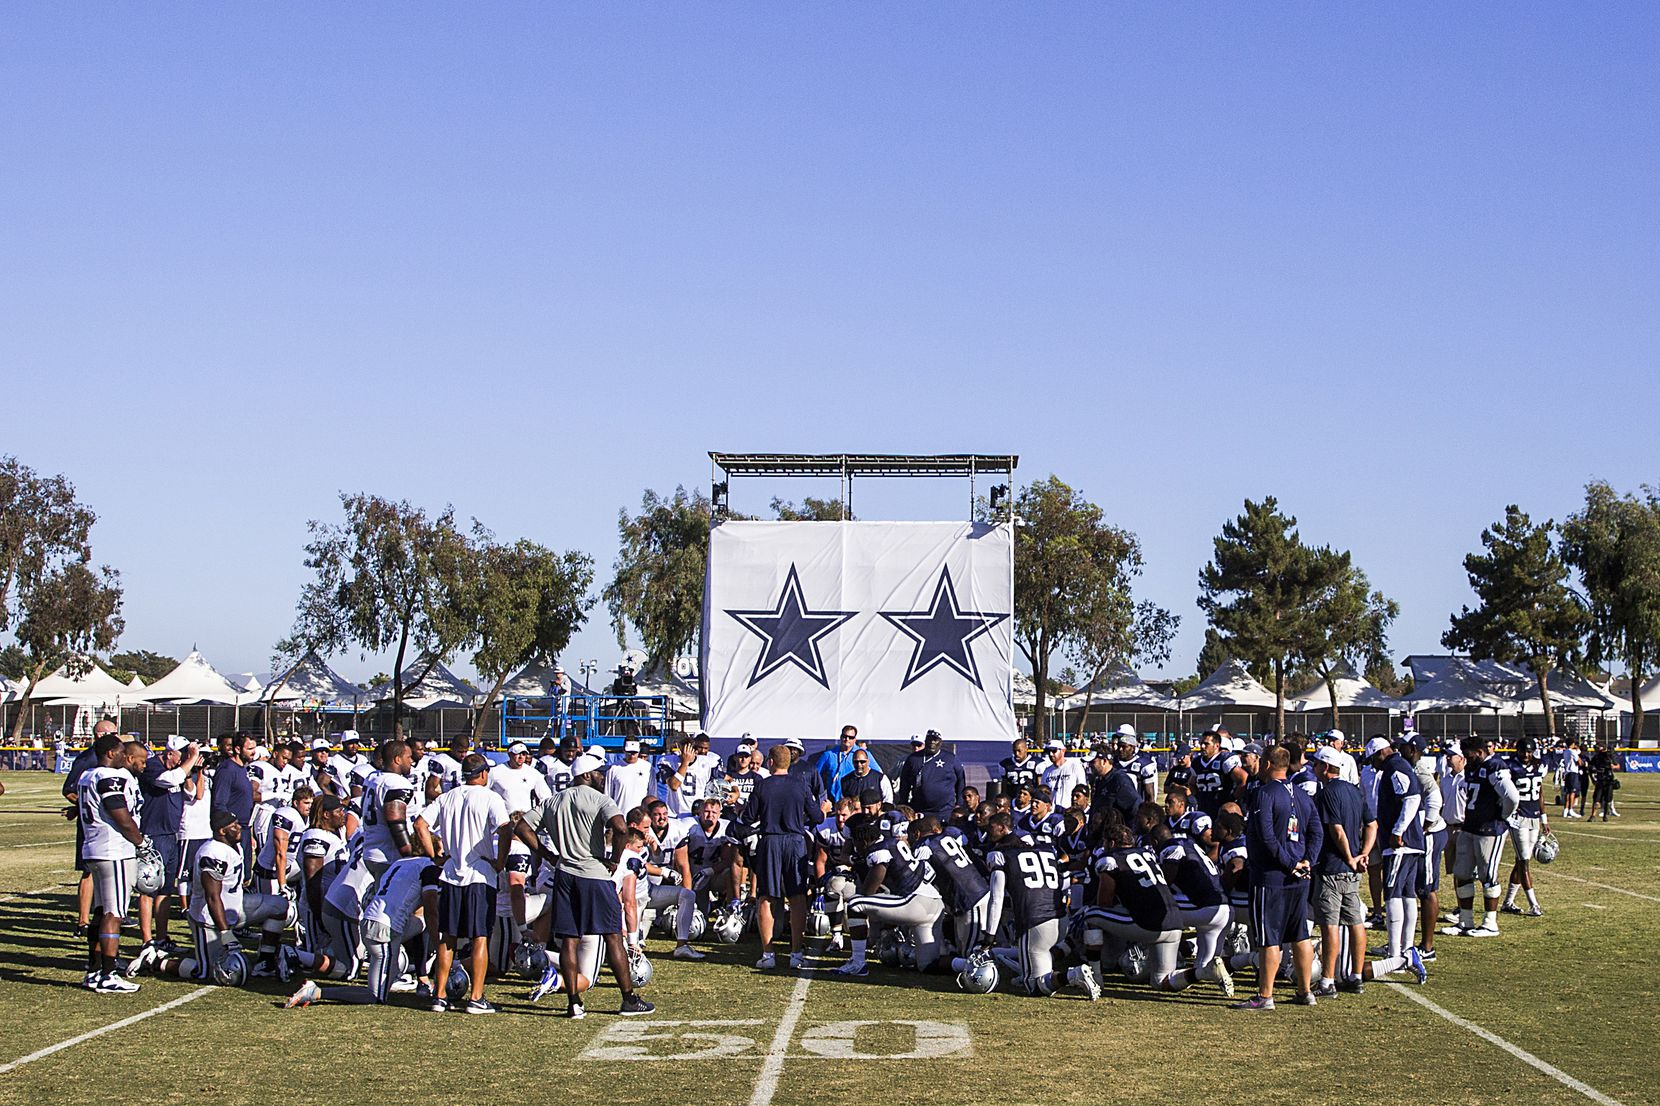 Dallas Cowboys players huddle around head coach Jason Garrett at the conclusion of afternoon practice at training camp on Tuesday, Aug. 4, 2015, in Oxnard, Calif. (Smiley N. Pool/The Dallas Morning News)